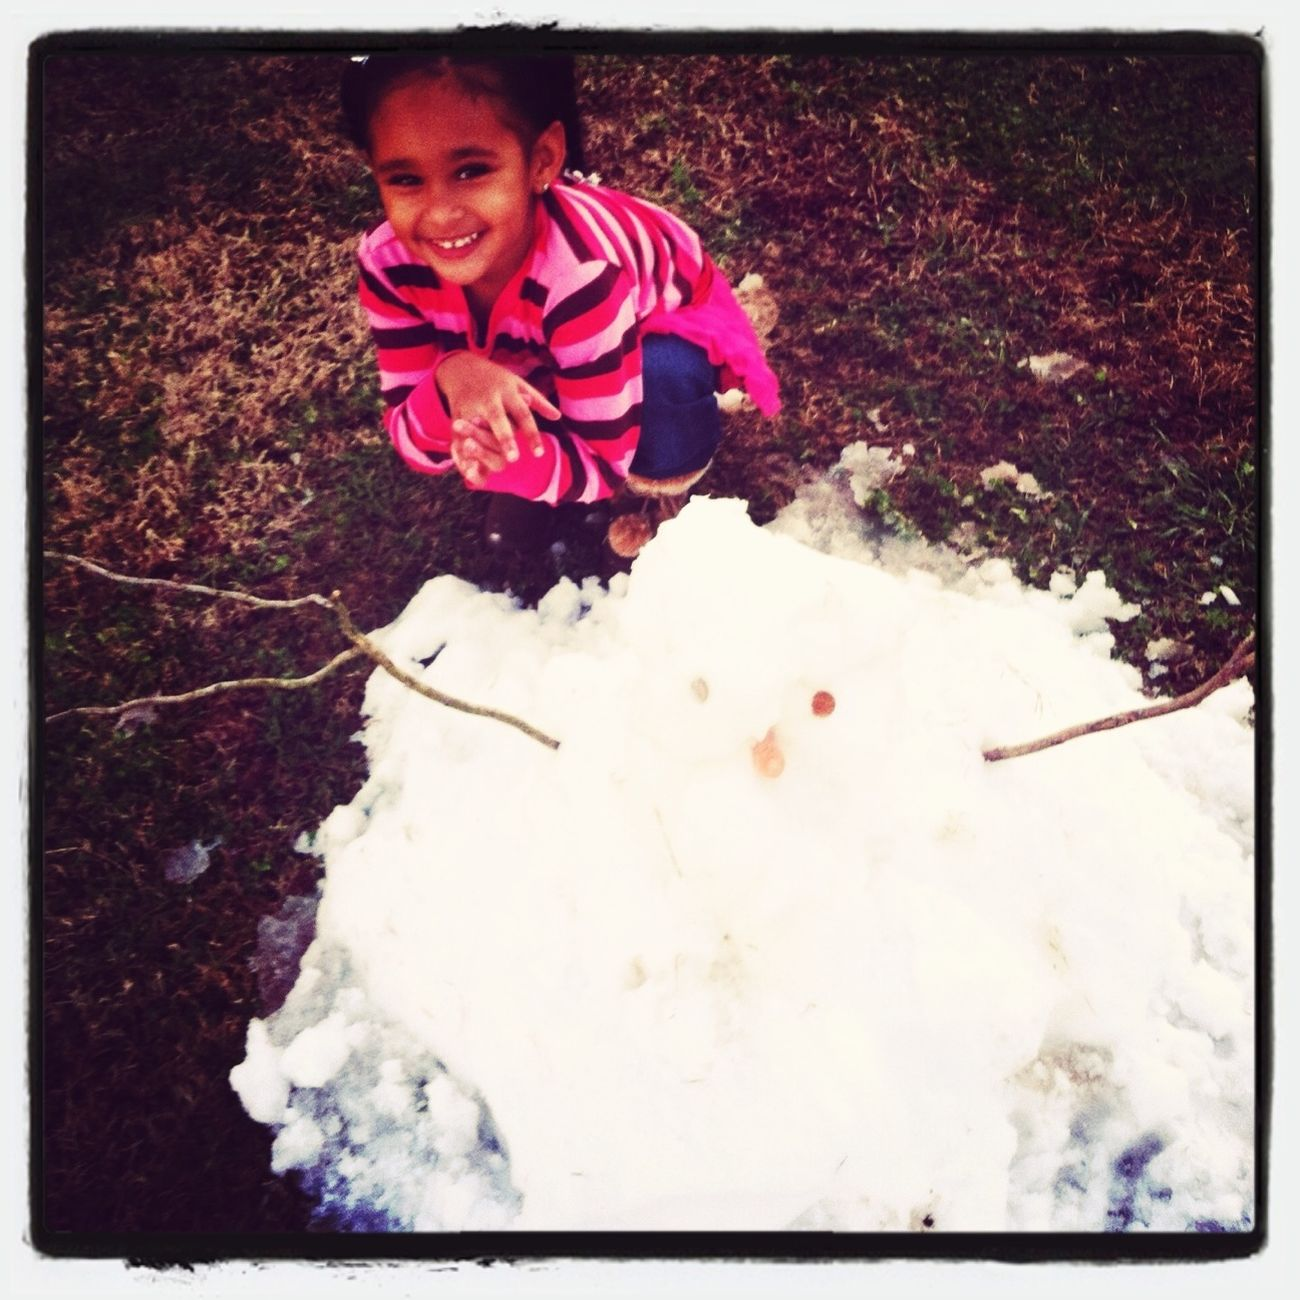 My Sister And The Snowman